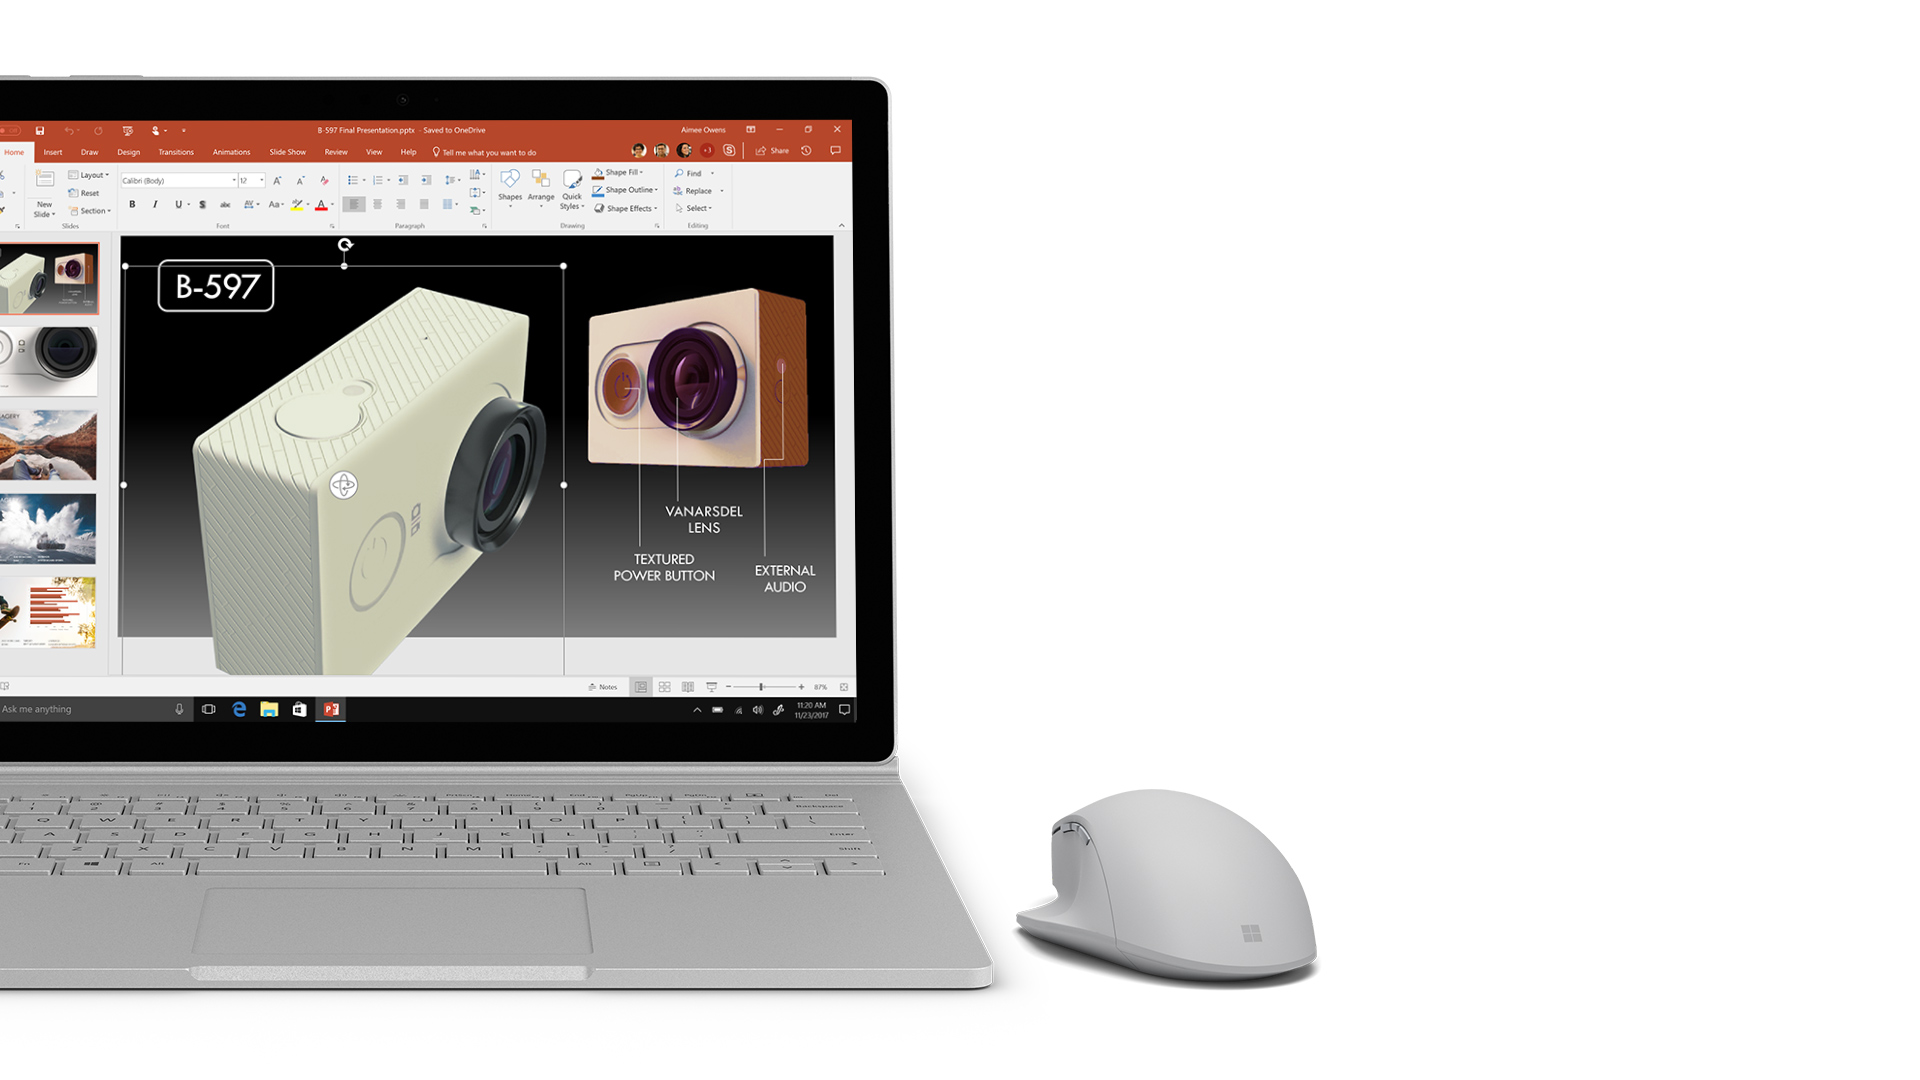 Surface 上的 PowerPoint 螢幕擷取畫面。